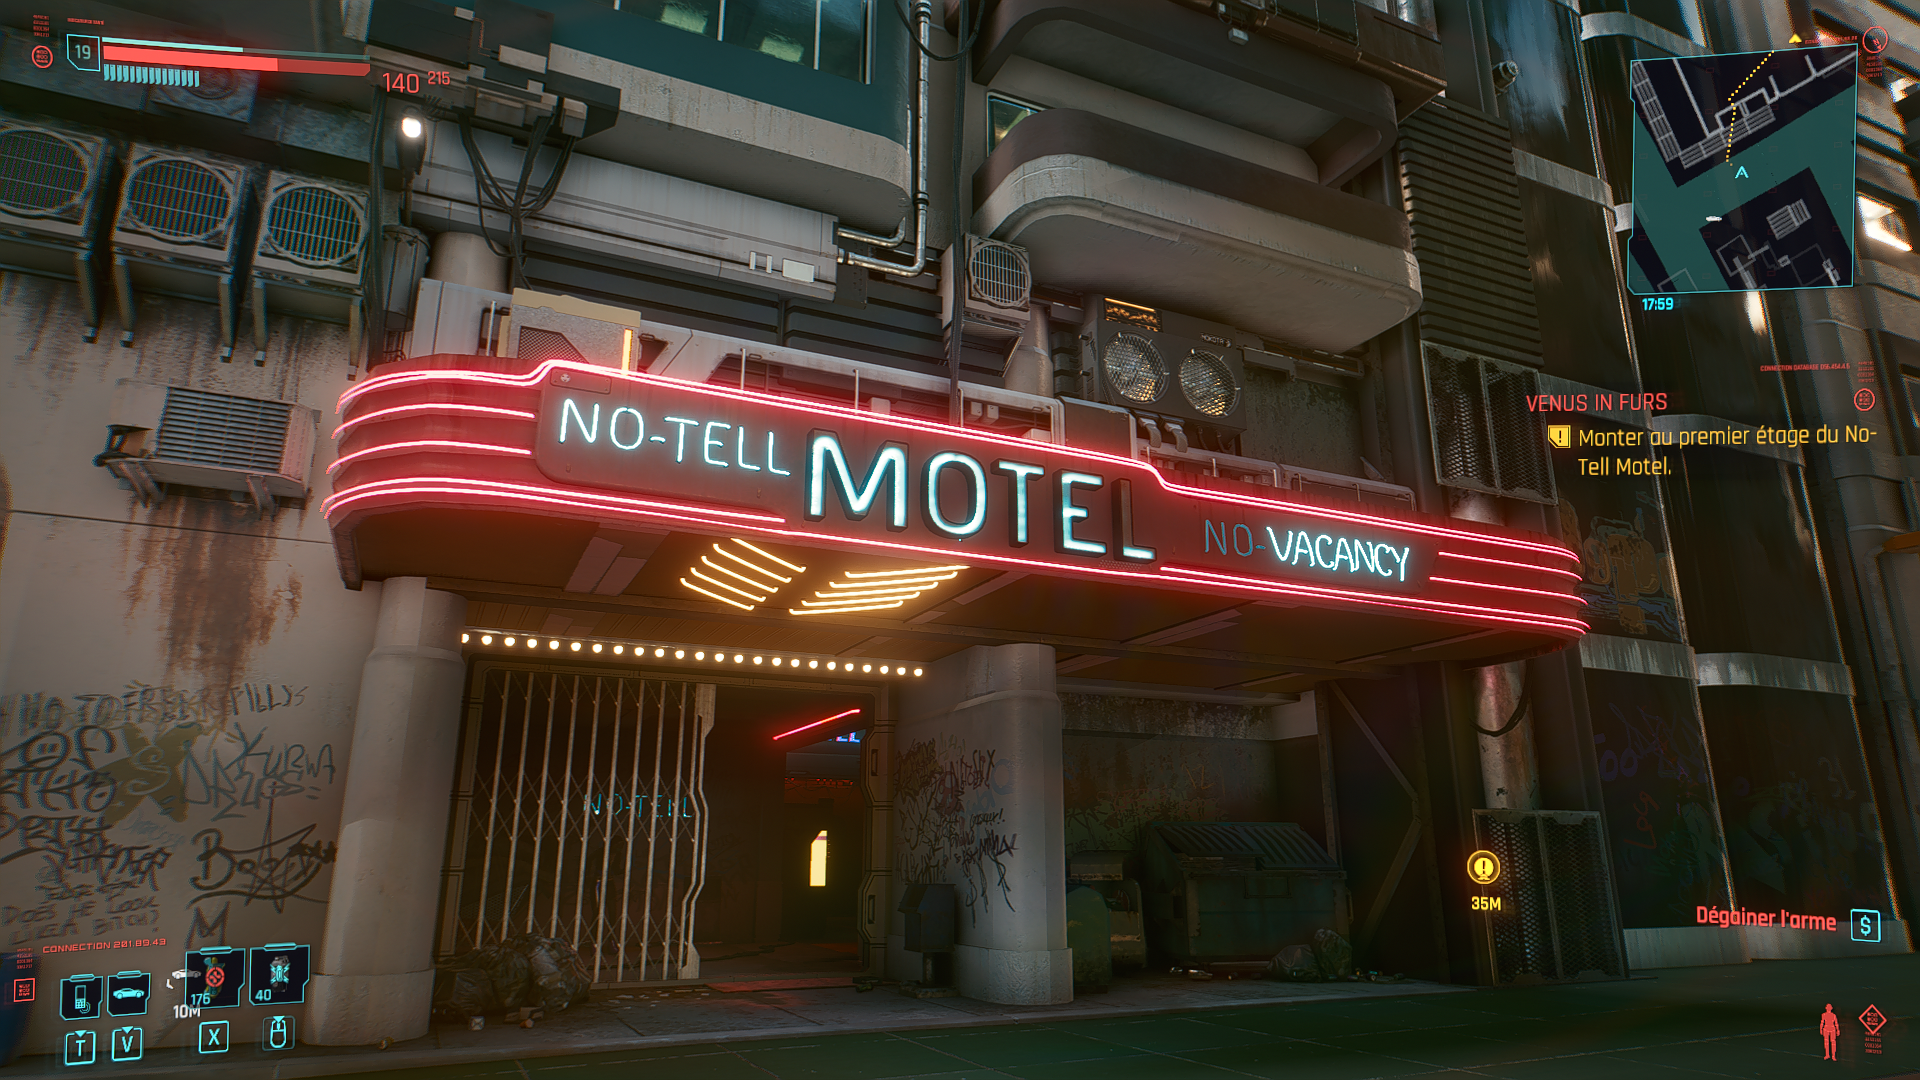 Cyberpunk 2077, quest Venus in fur: iconic weapon Sire Vergeraide, how to get it? Our guide (spoilers)